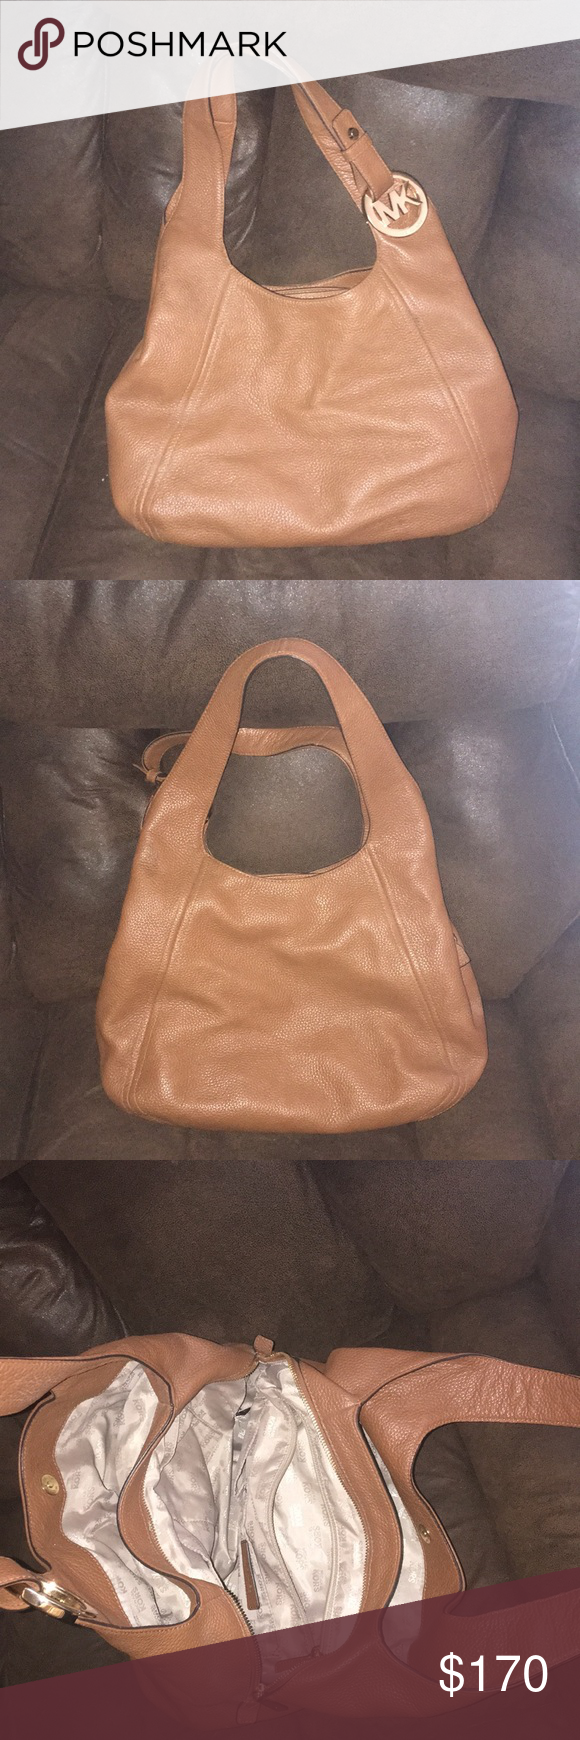 783b983e77a Michael Kors handbag luggage color discontinued Only used 1 time in  excellent condition! Michael Kors Bags Shoulder Bags